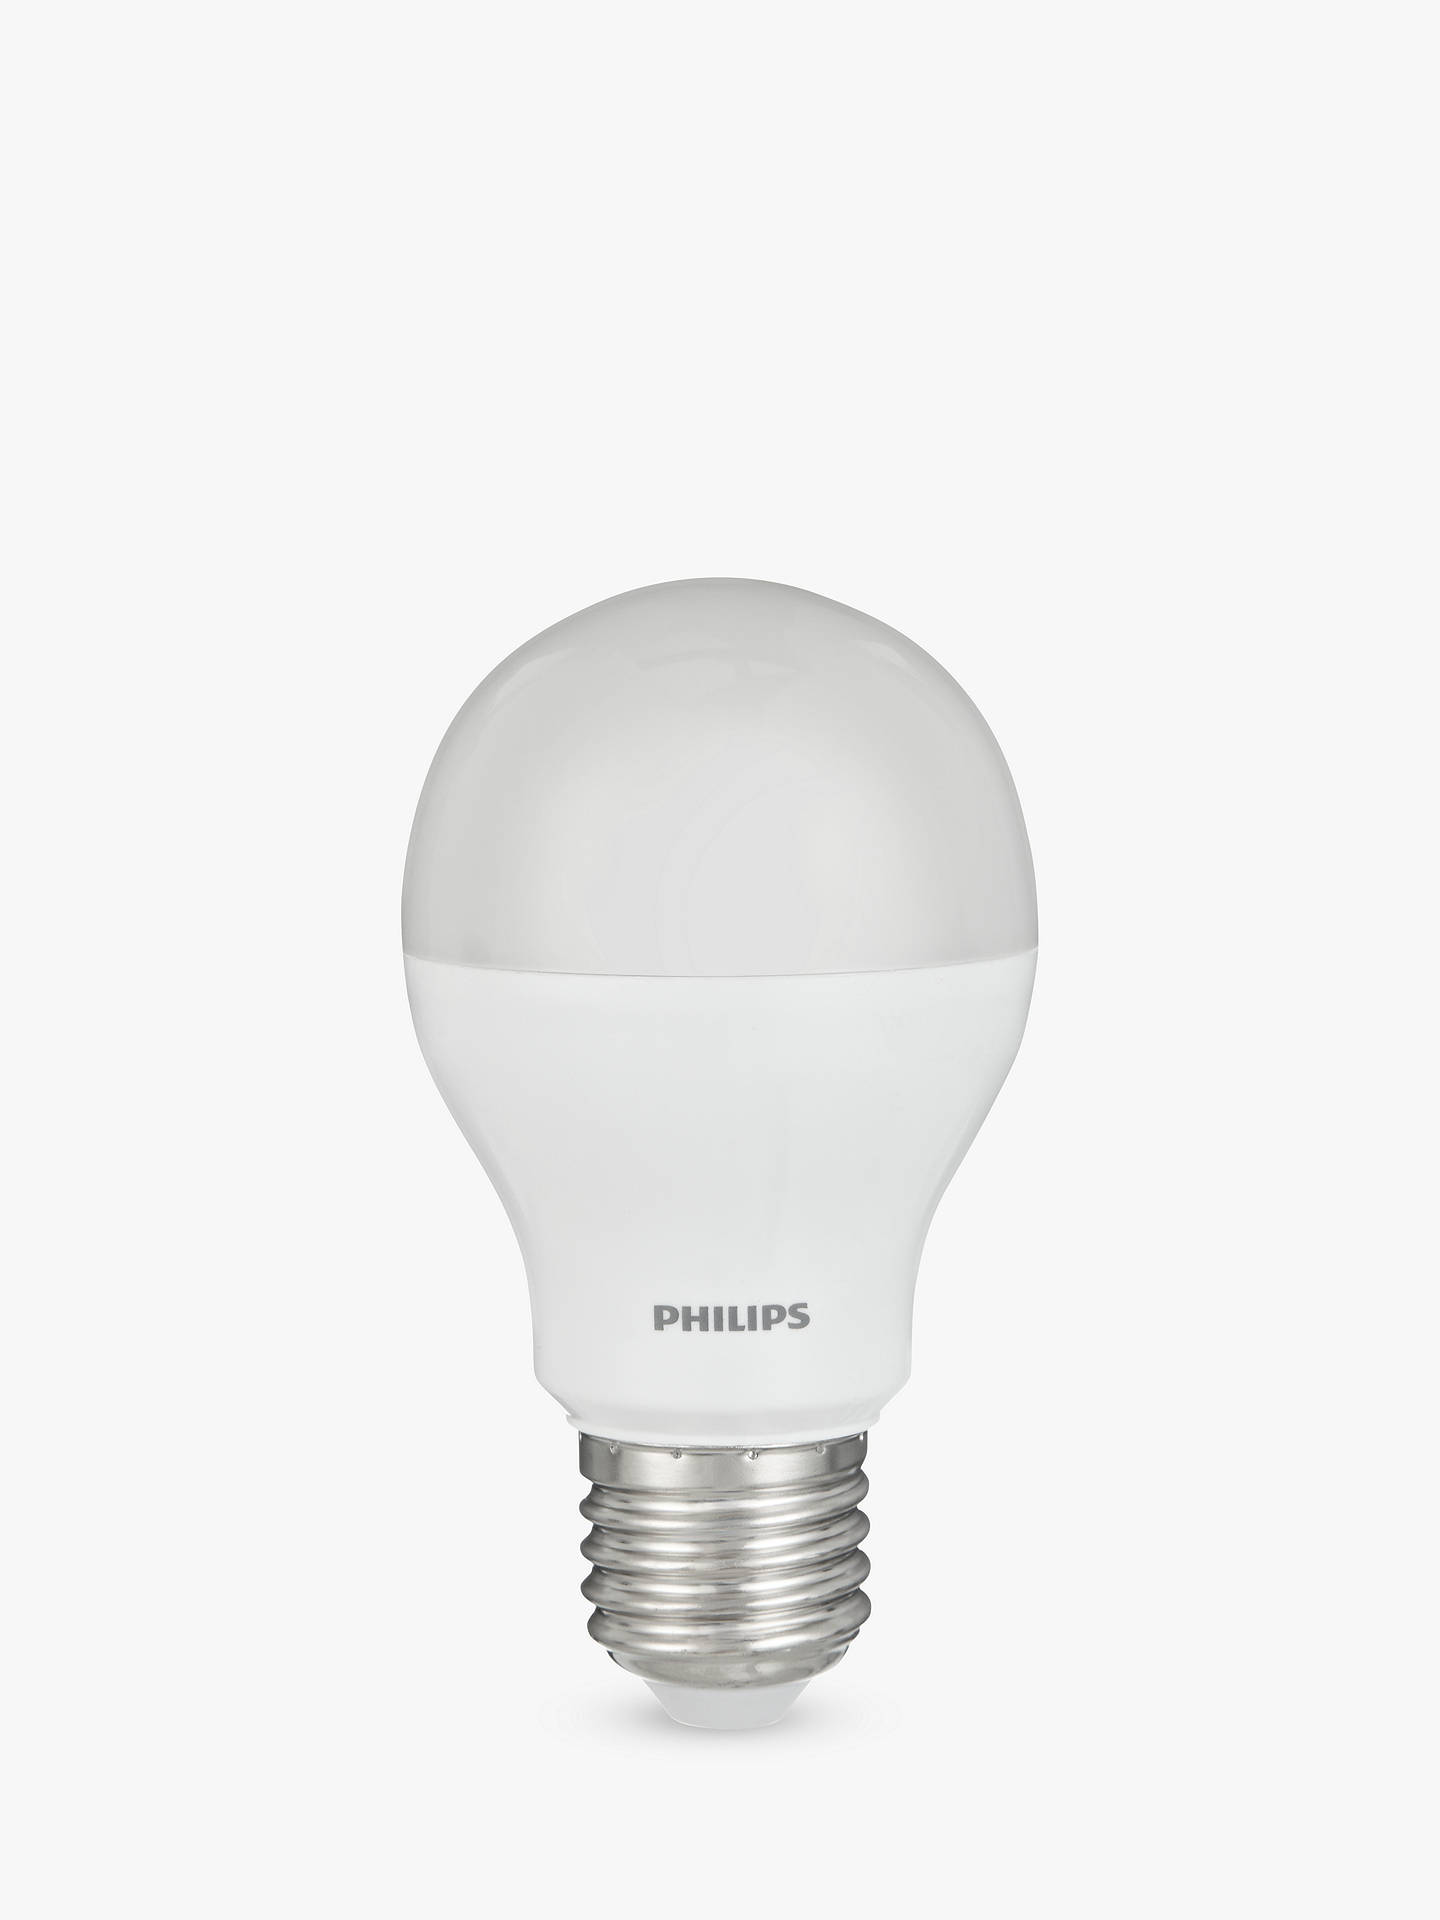 BuyPhilips 8W ES LED Classic Light Bulb, Frosted Online at johnlewis.com